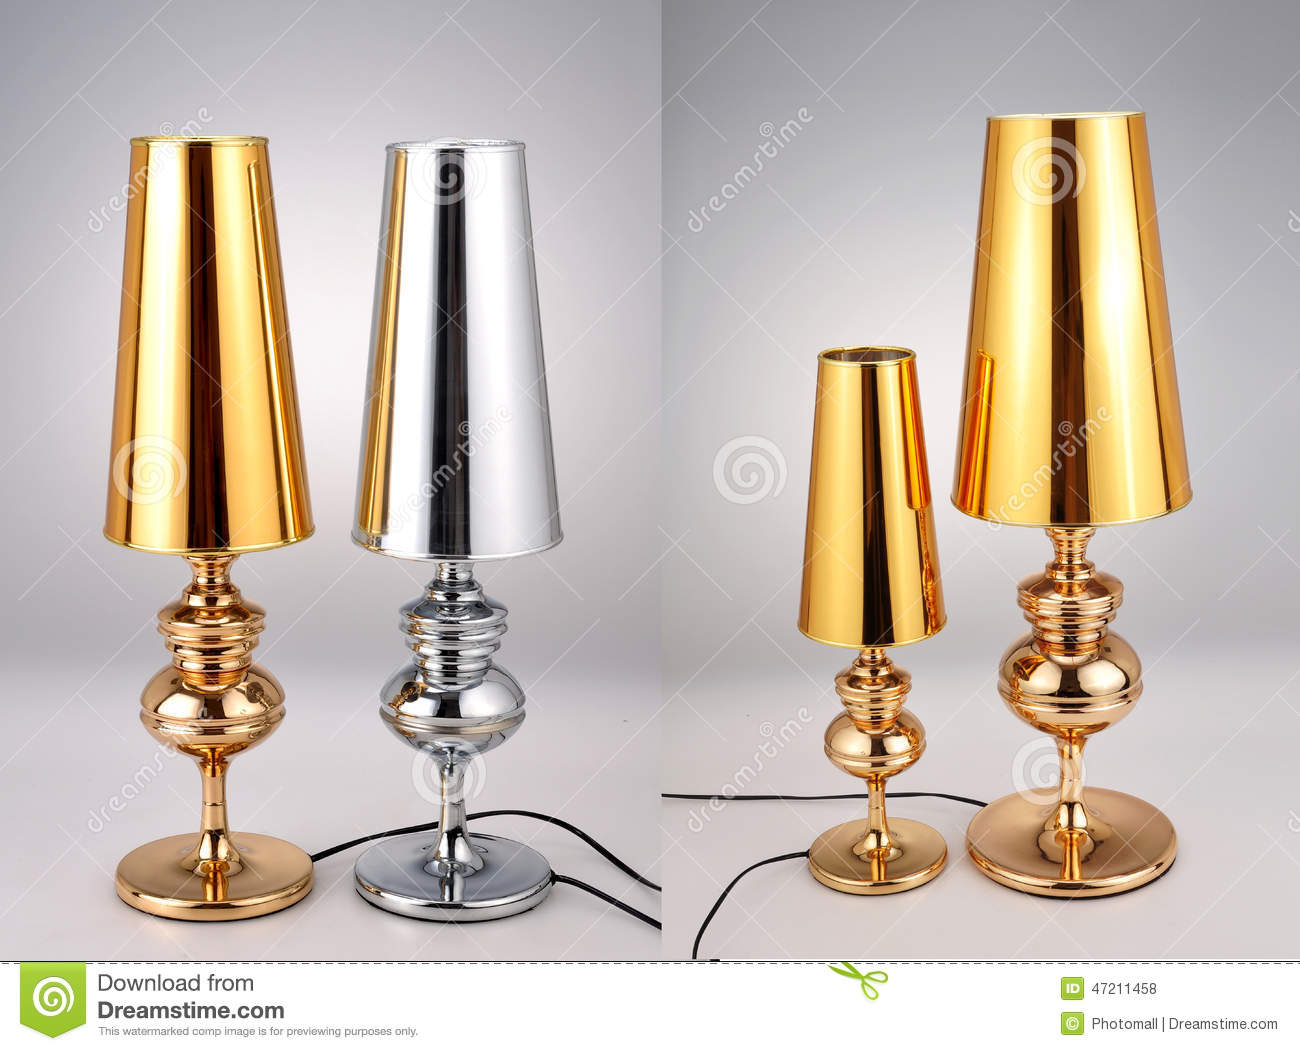 Golden And Silver Table LampsLuxury Table Lights Stock